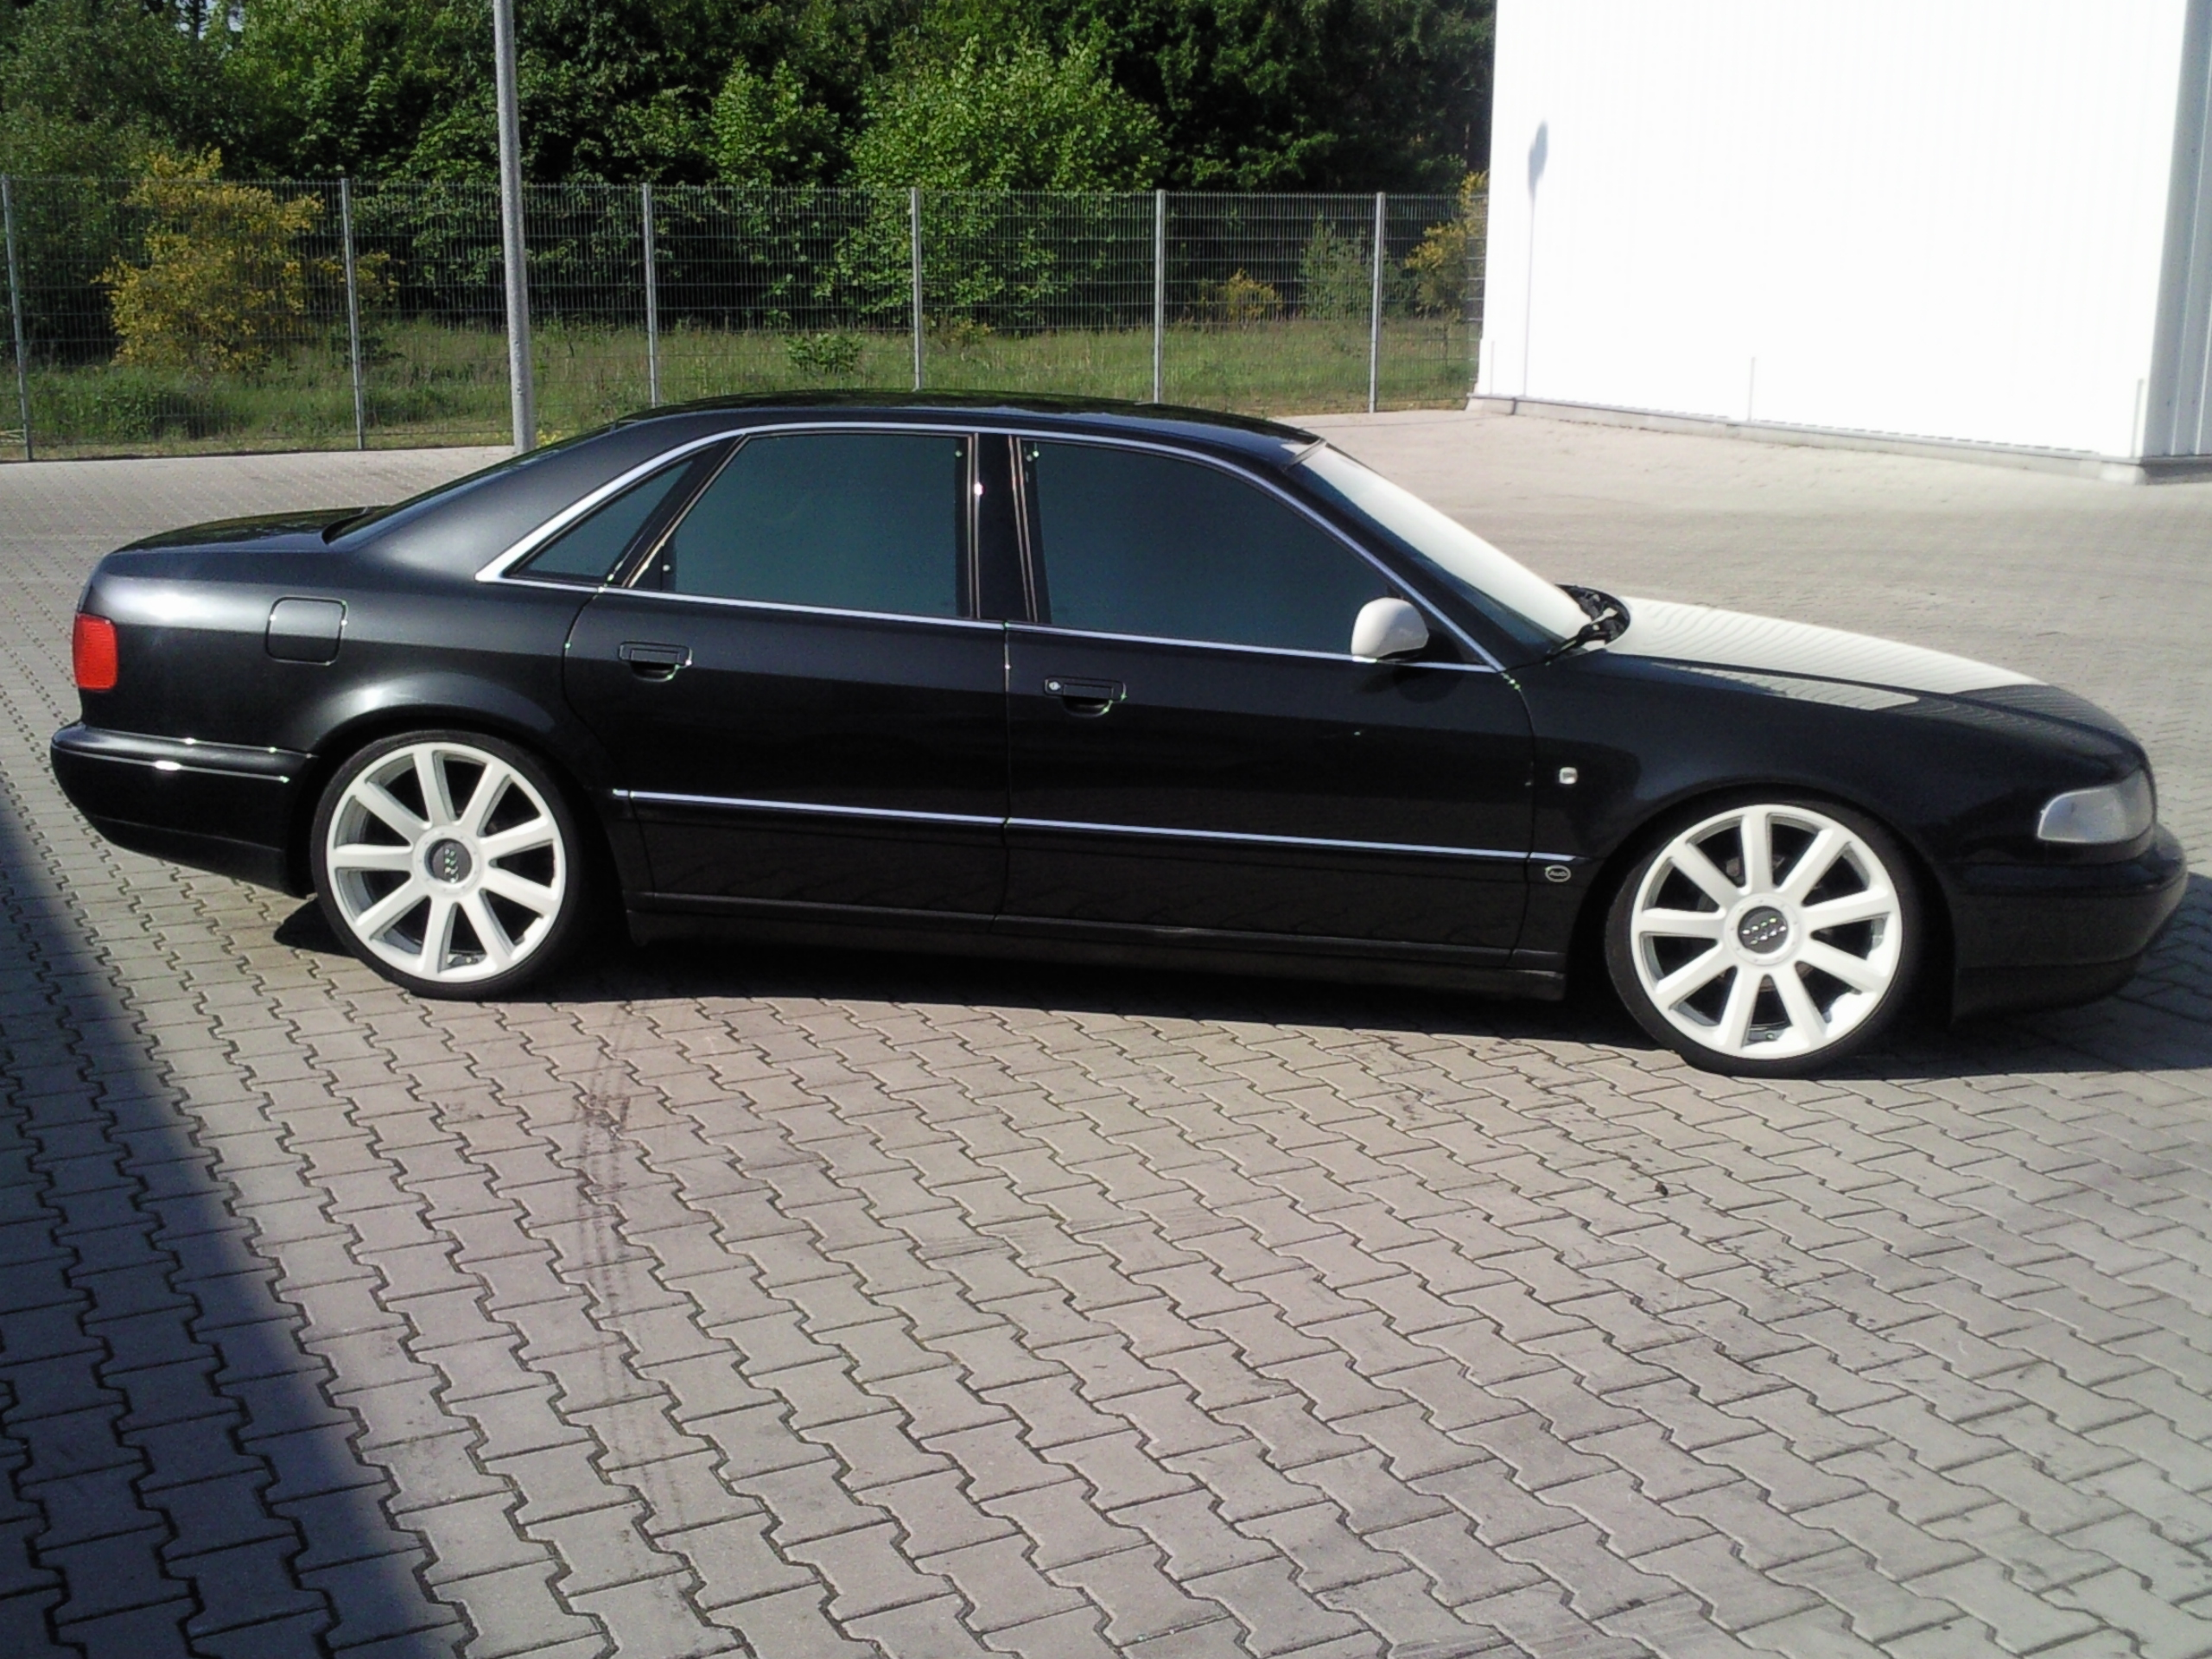 audi a8 d2 tuning images